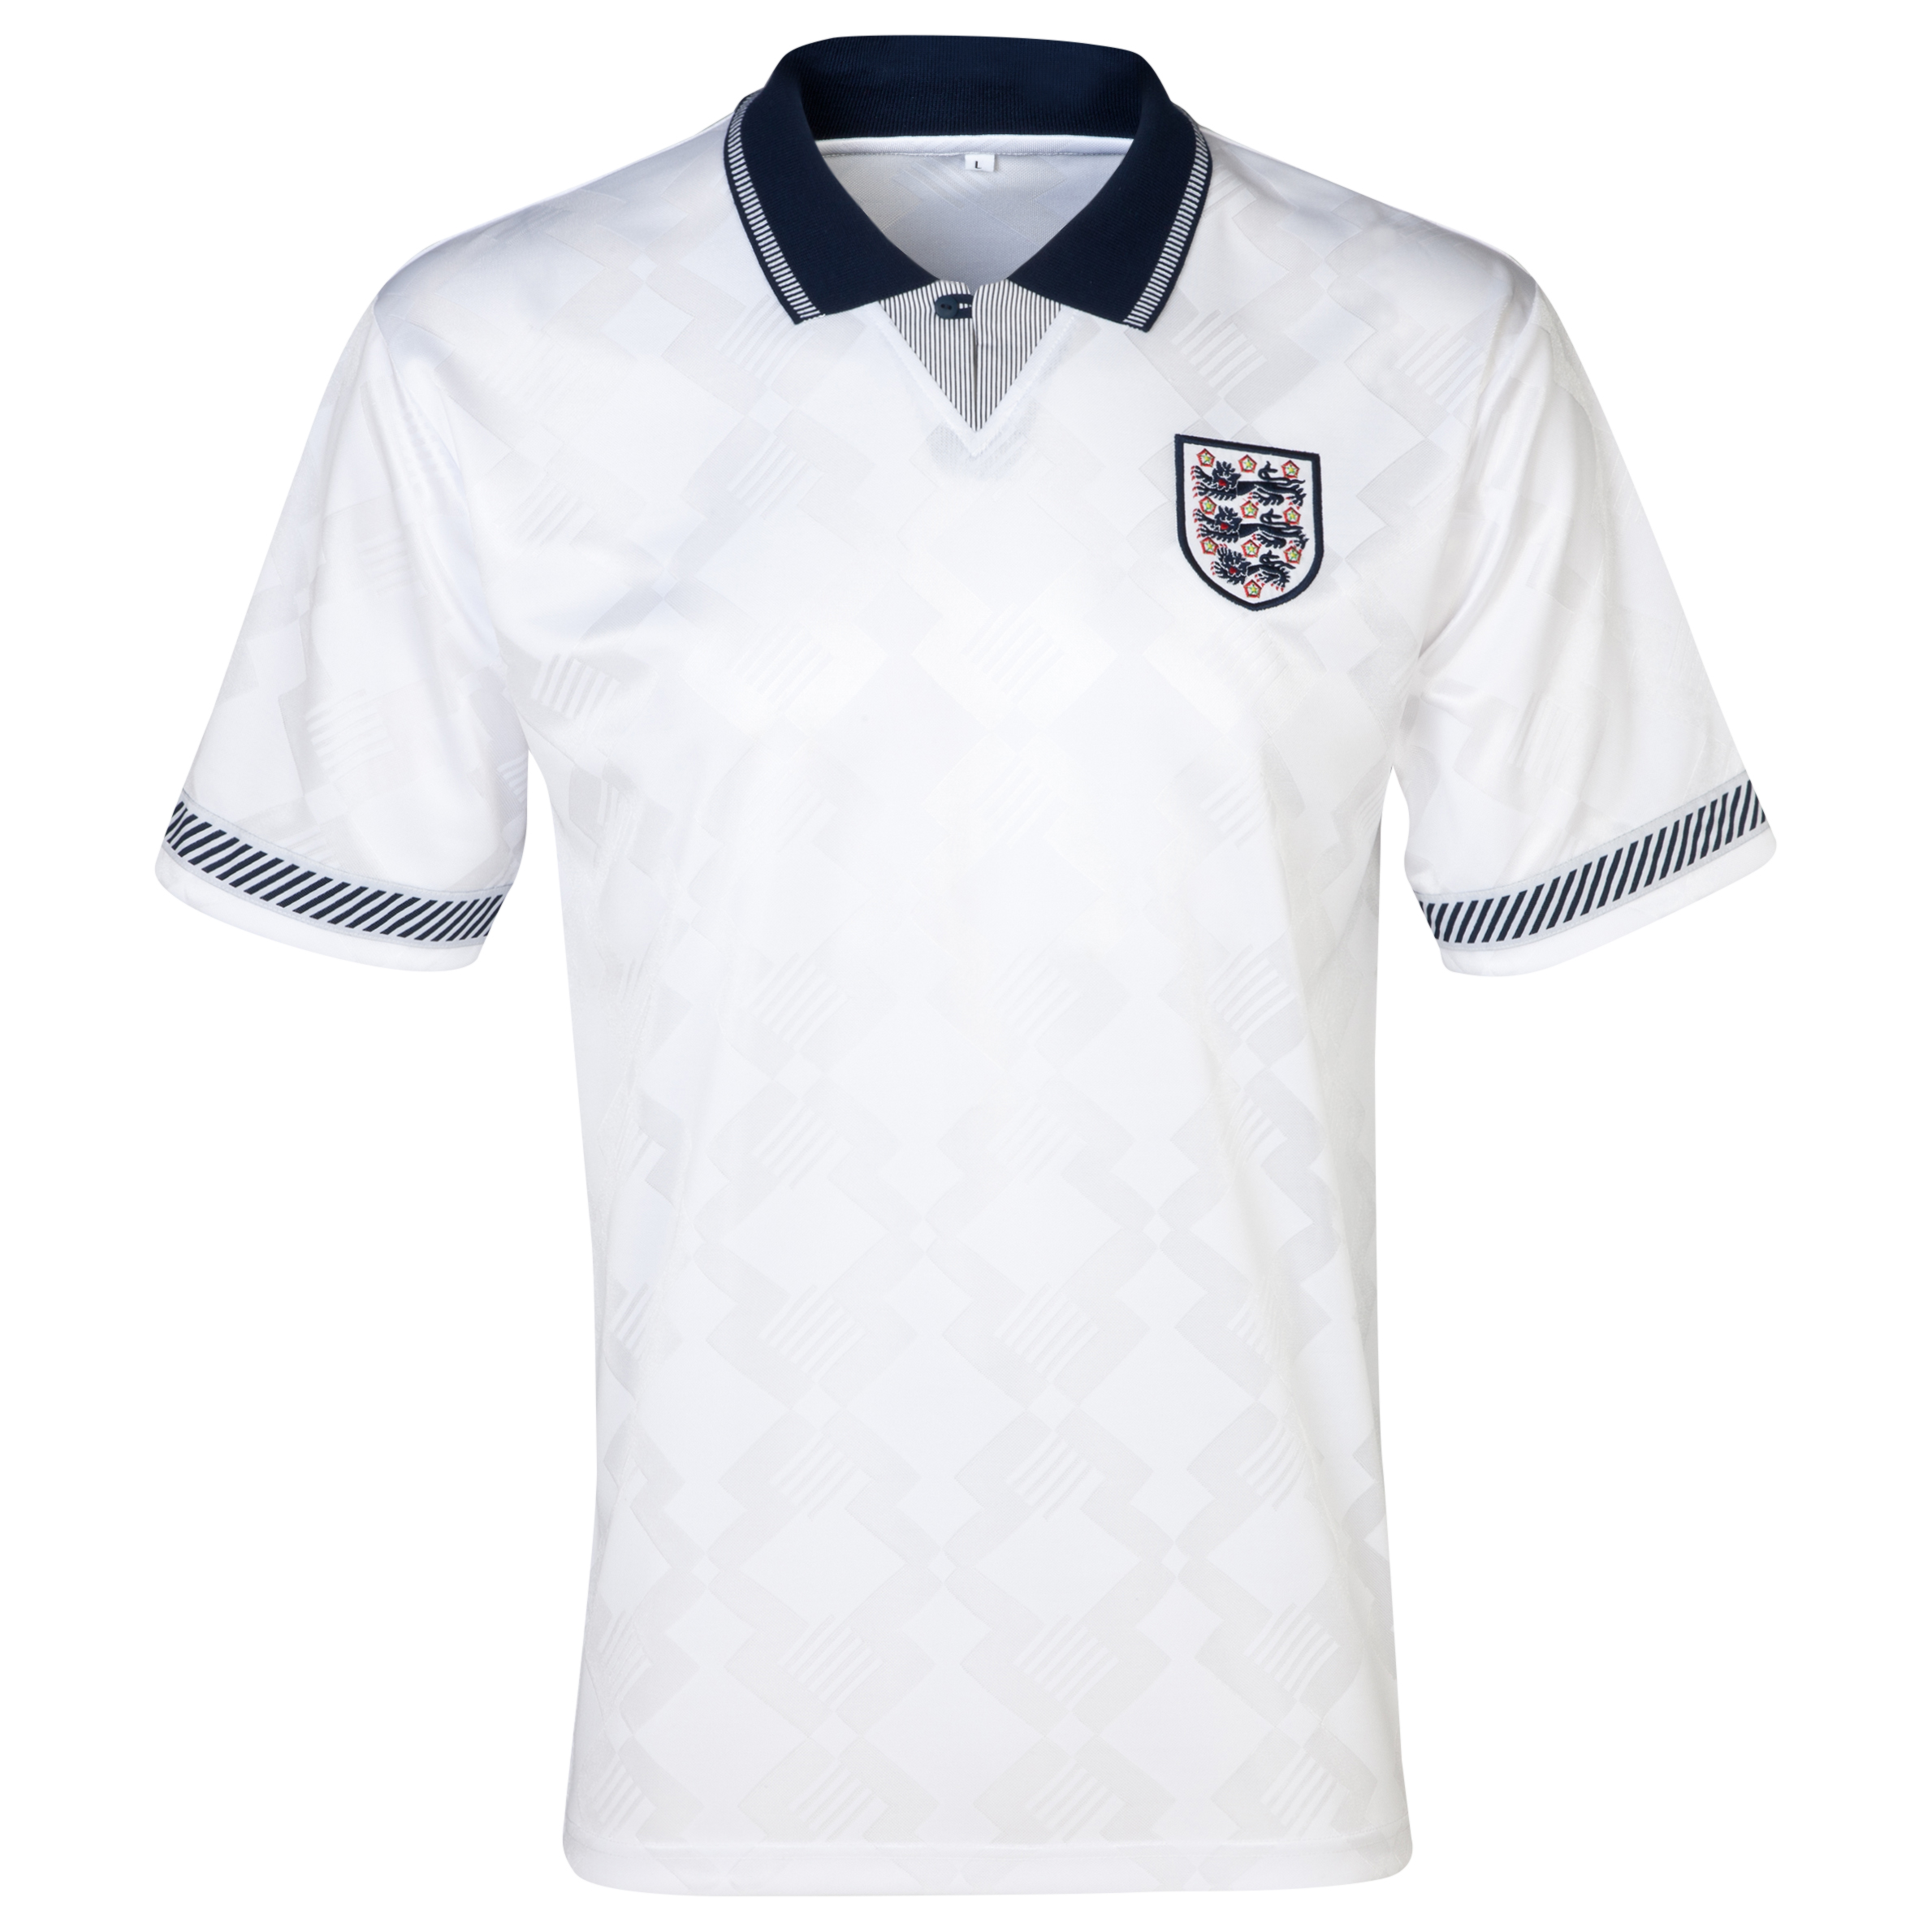 England 1990 World Cup Finals No19 Shirt